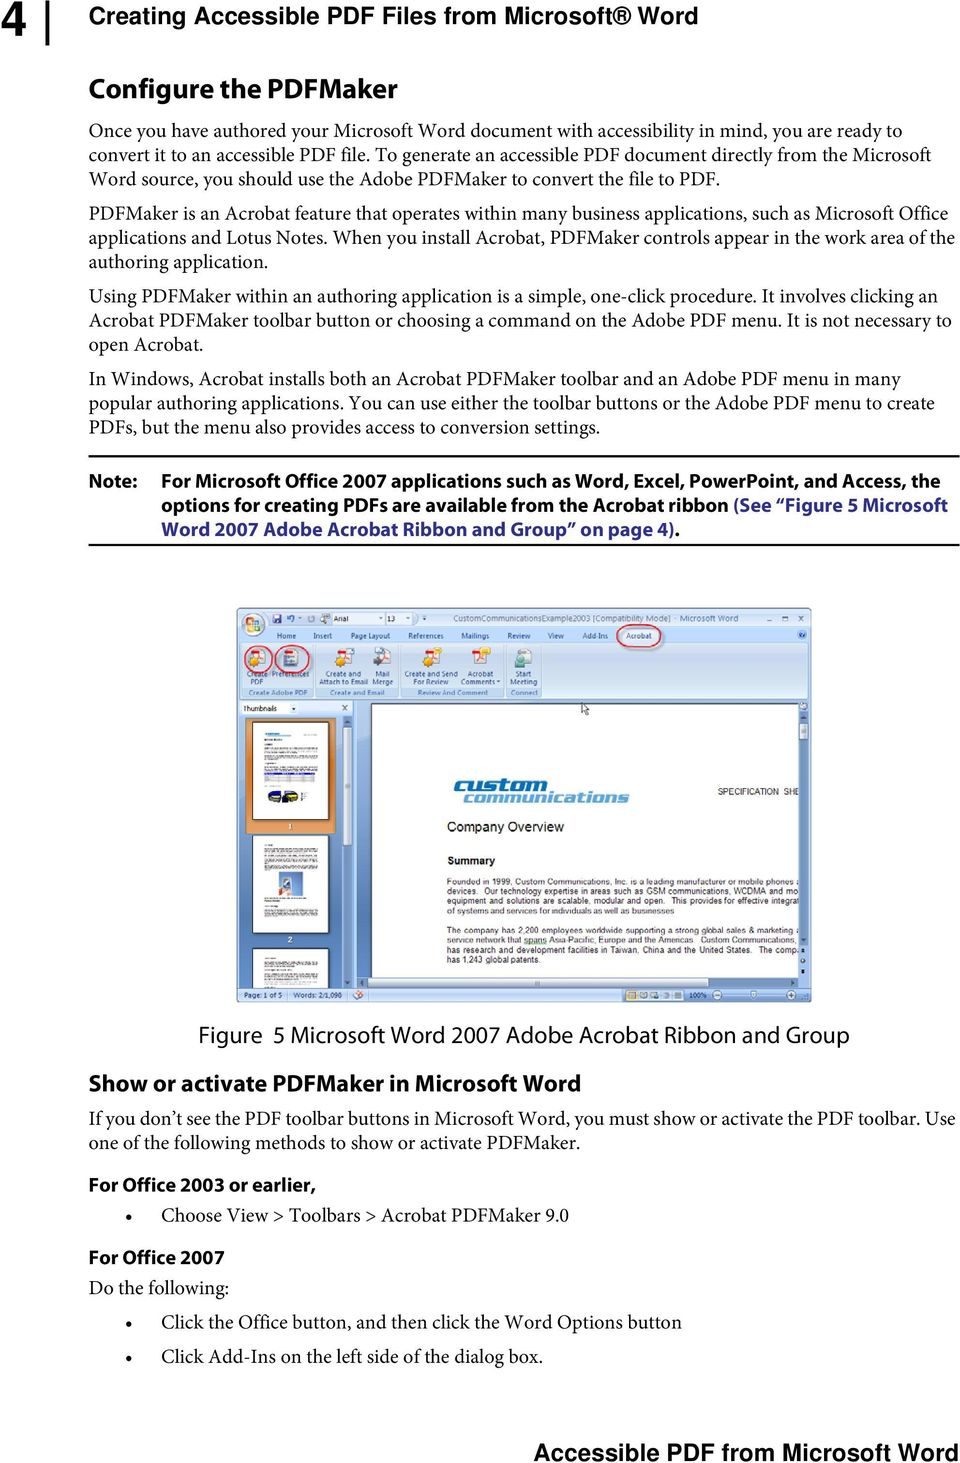 PDFMaker is an Acrobat feature that operates within many business applications, such as Microsoft Office applications and Lotus Notes.